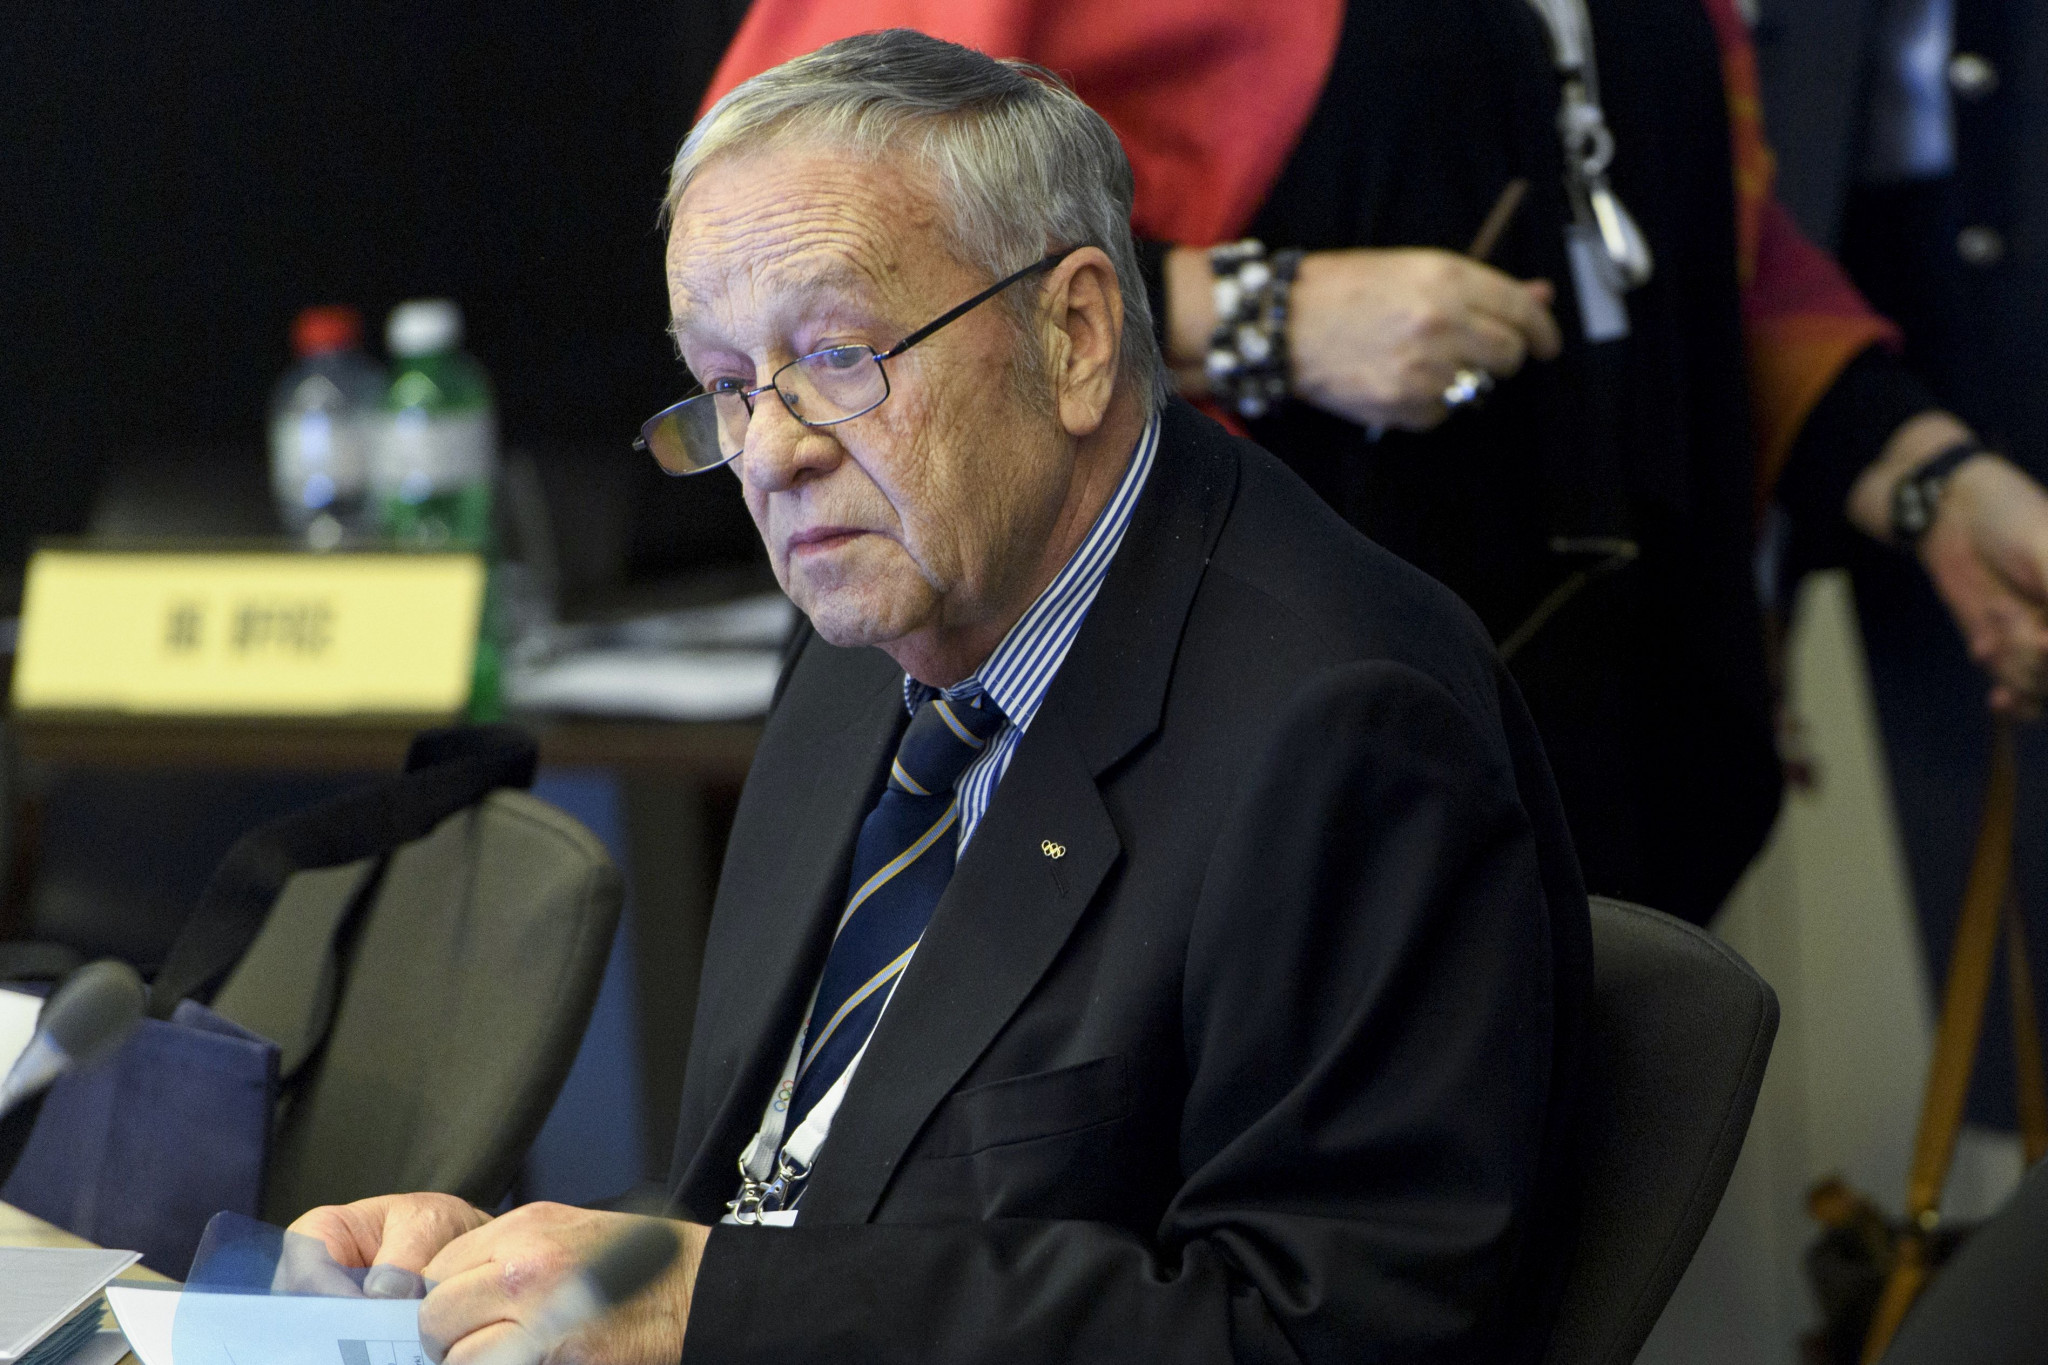 The FIS Congress, where Gian-Franco Kasper's successor will be named, could be impacted by the pandemic ©Getty Images